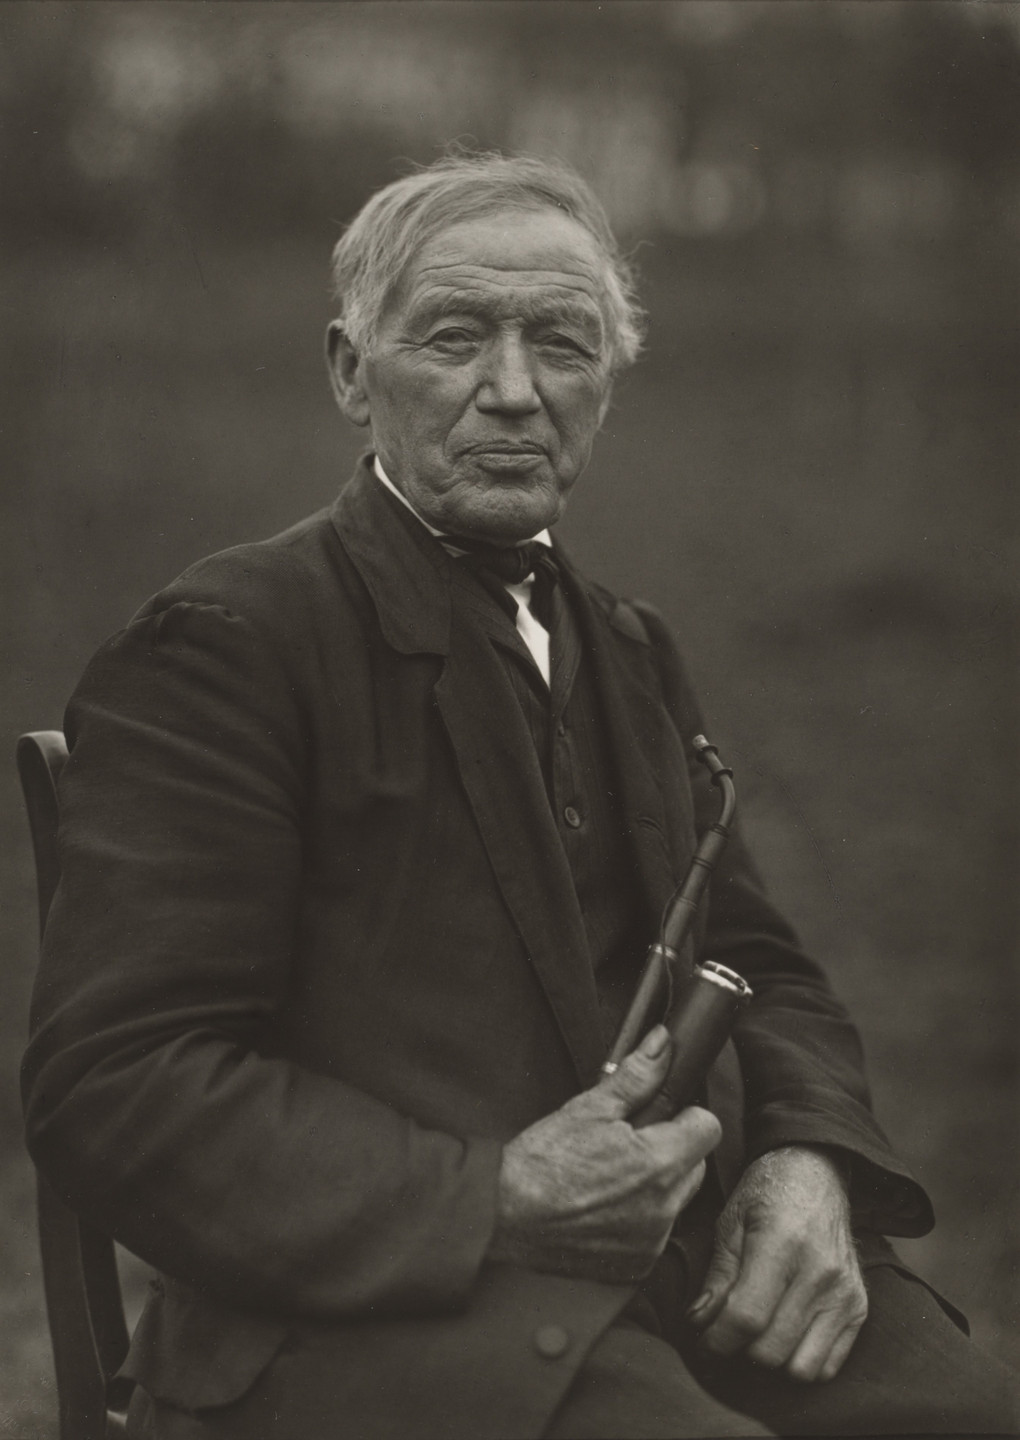 August Sander. The Philosopher. 1913